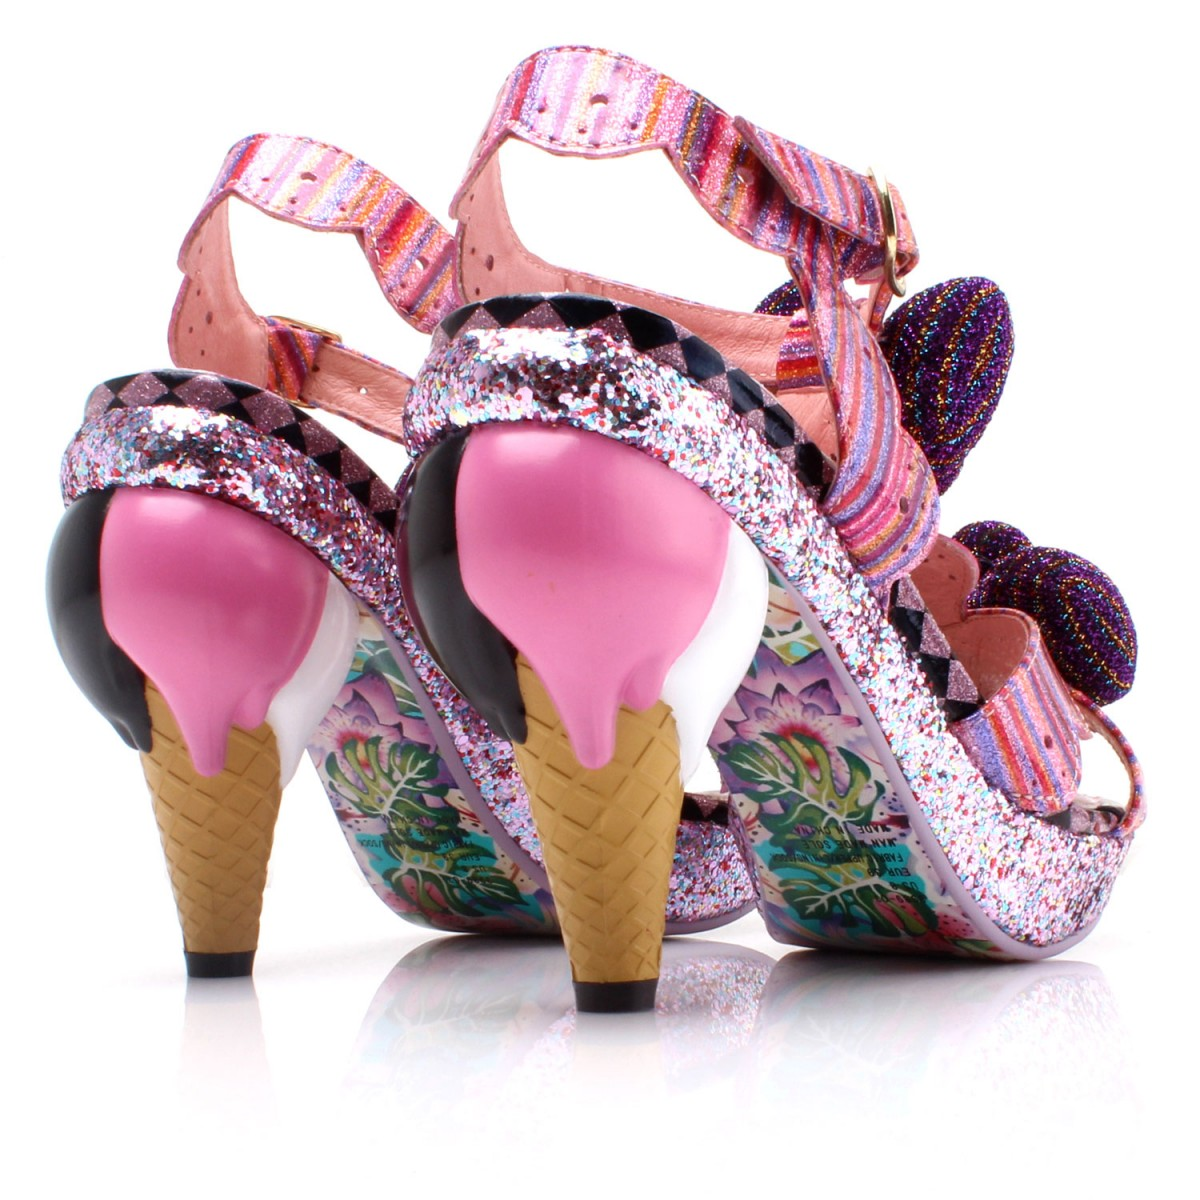 irregular-choice-nicka-bocka-glory-pink-white-purple-glitter-ice-cream-heels-bow-detail-4